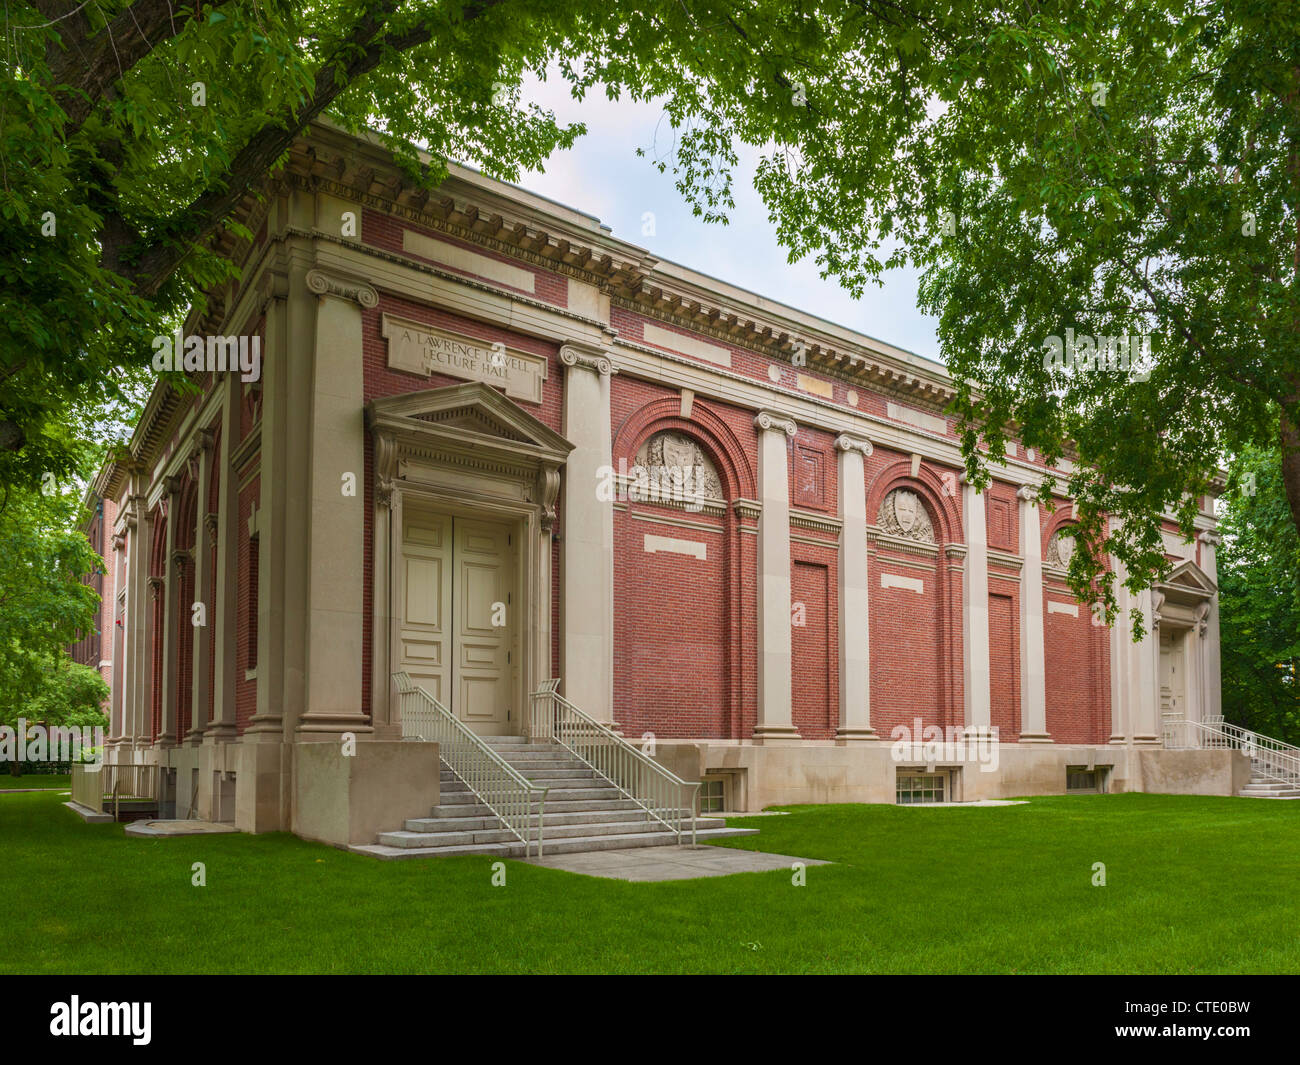 Lawrence Lowell Lecture Hall, Cambridge, MA - Stock Image